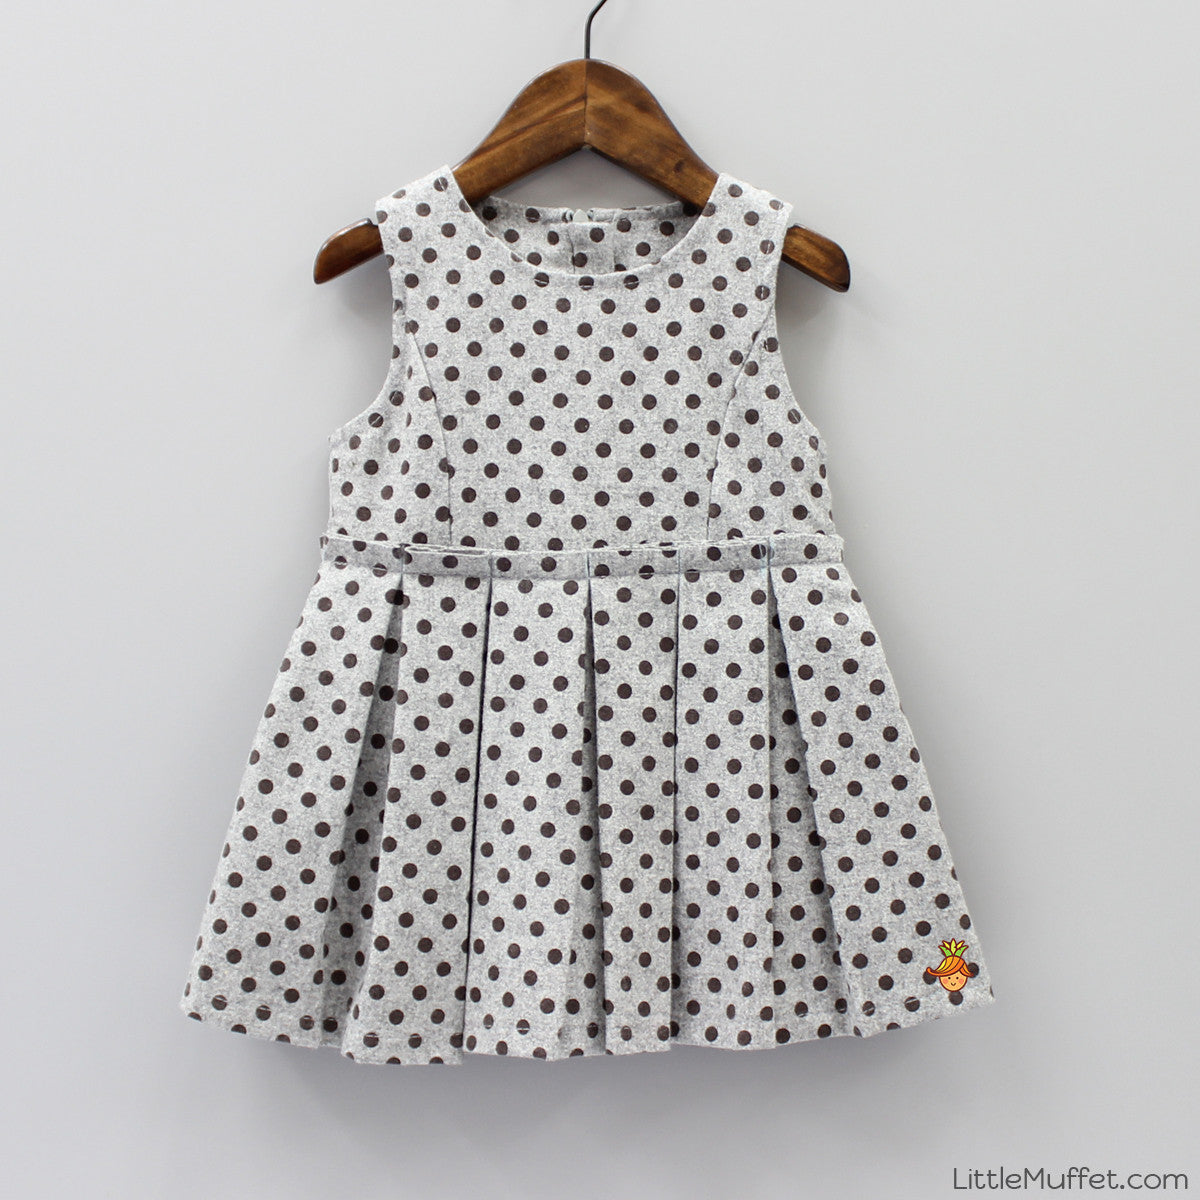 size 6 long sleeve dress 3to4yeas